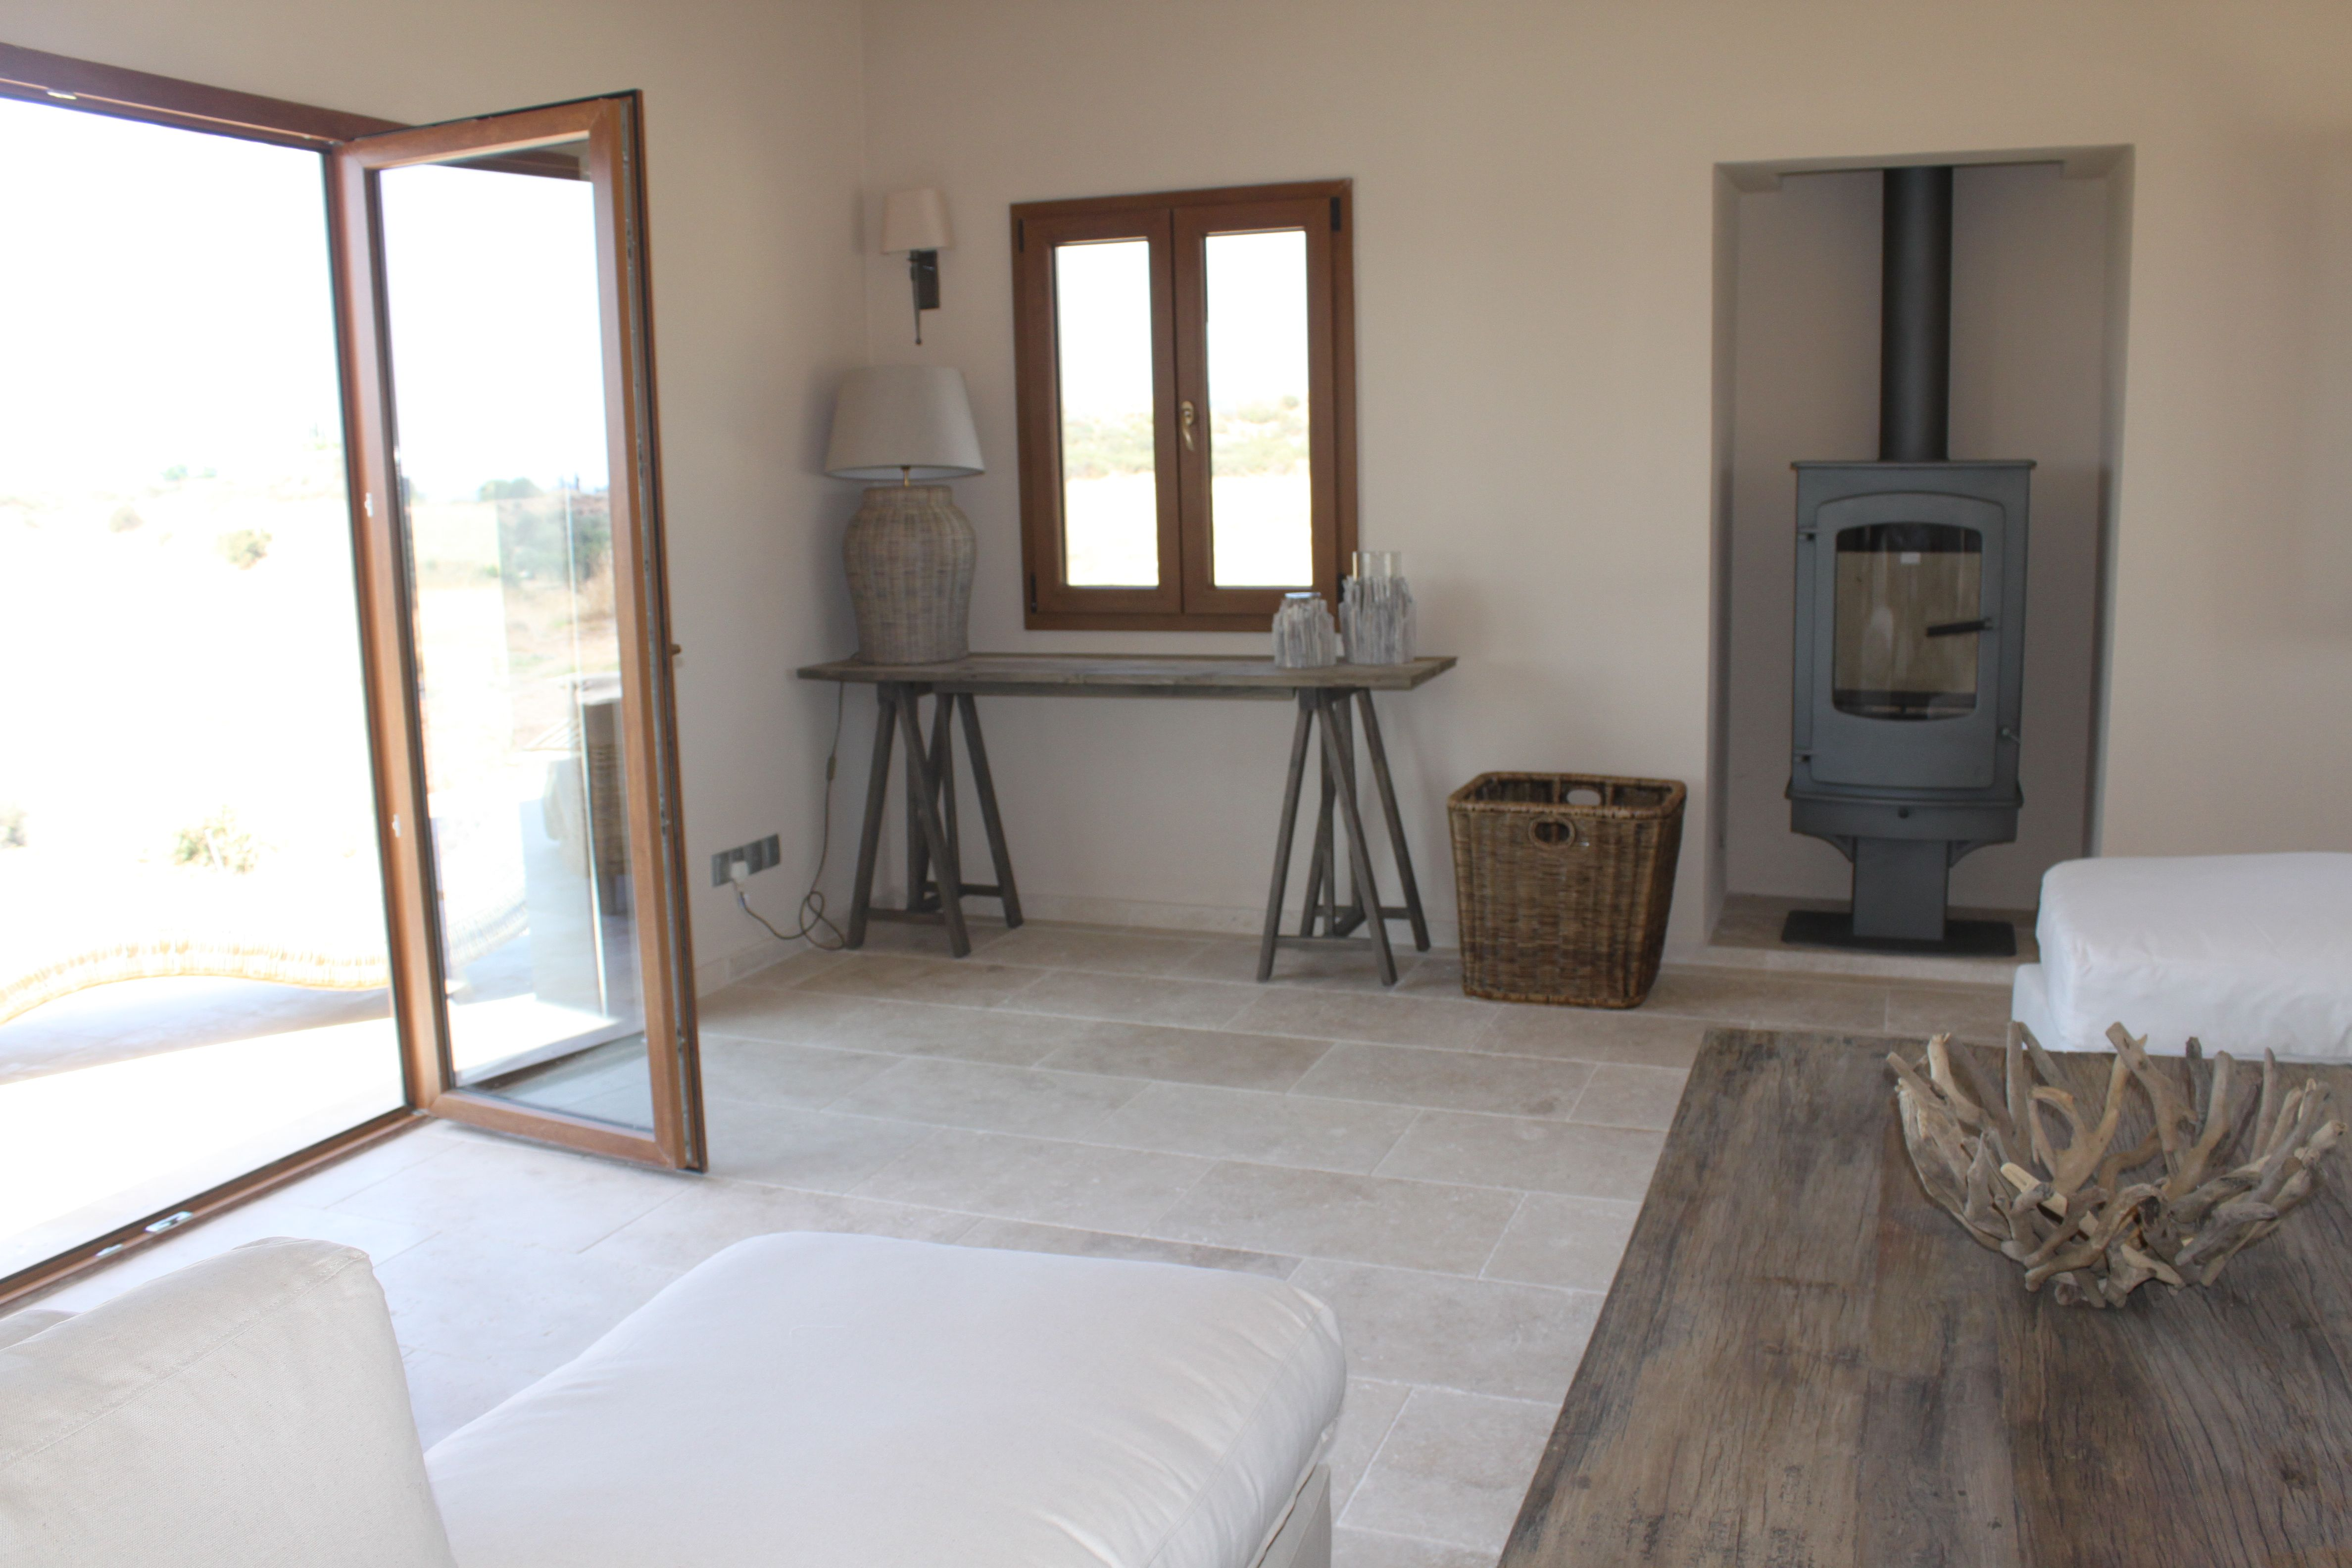 The Light Tumbled Travertine in the 610x406 format adds to the light, airy feeling in this room.